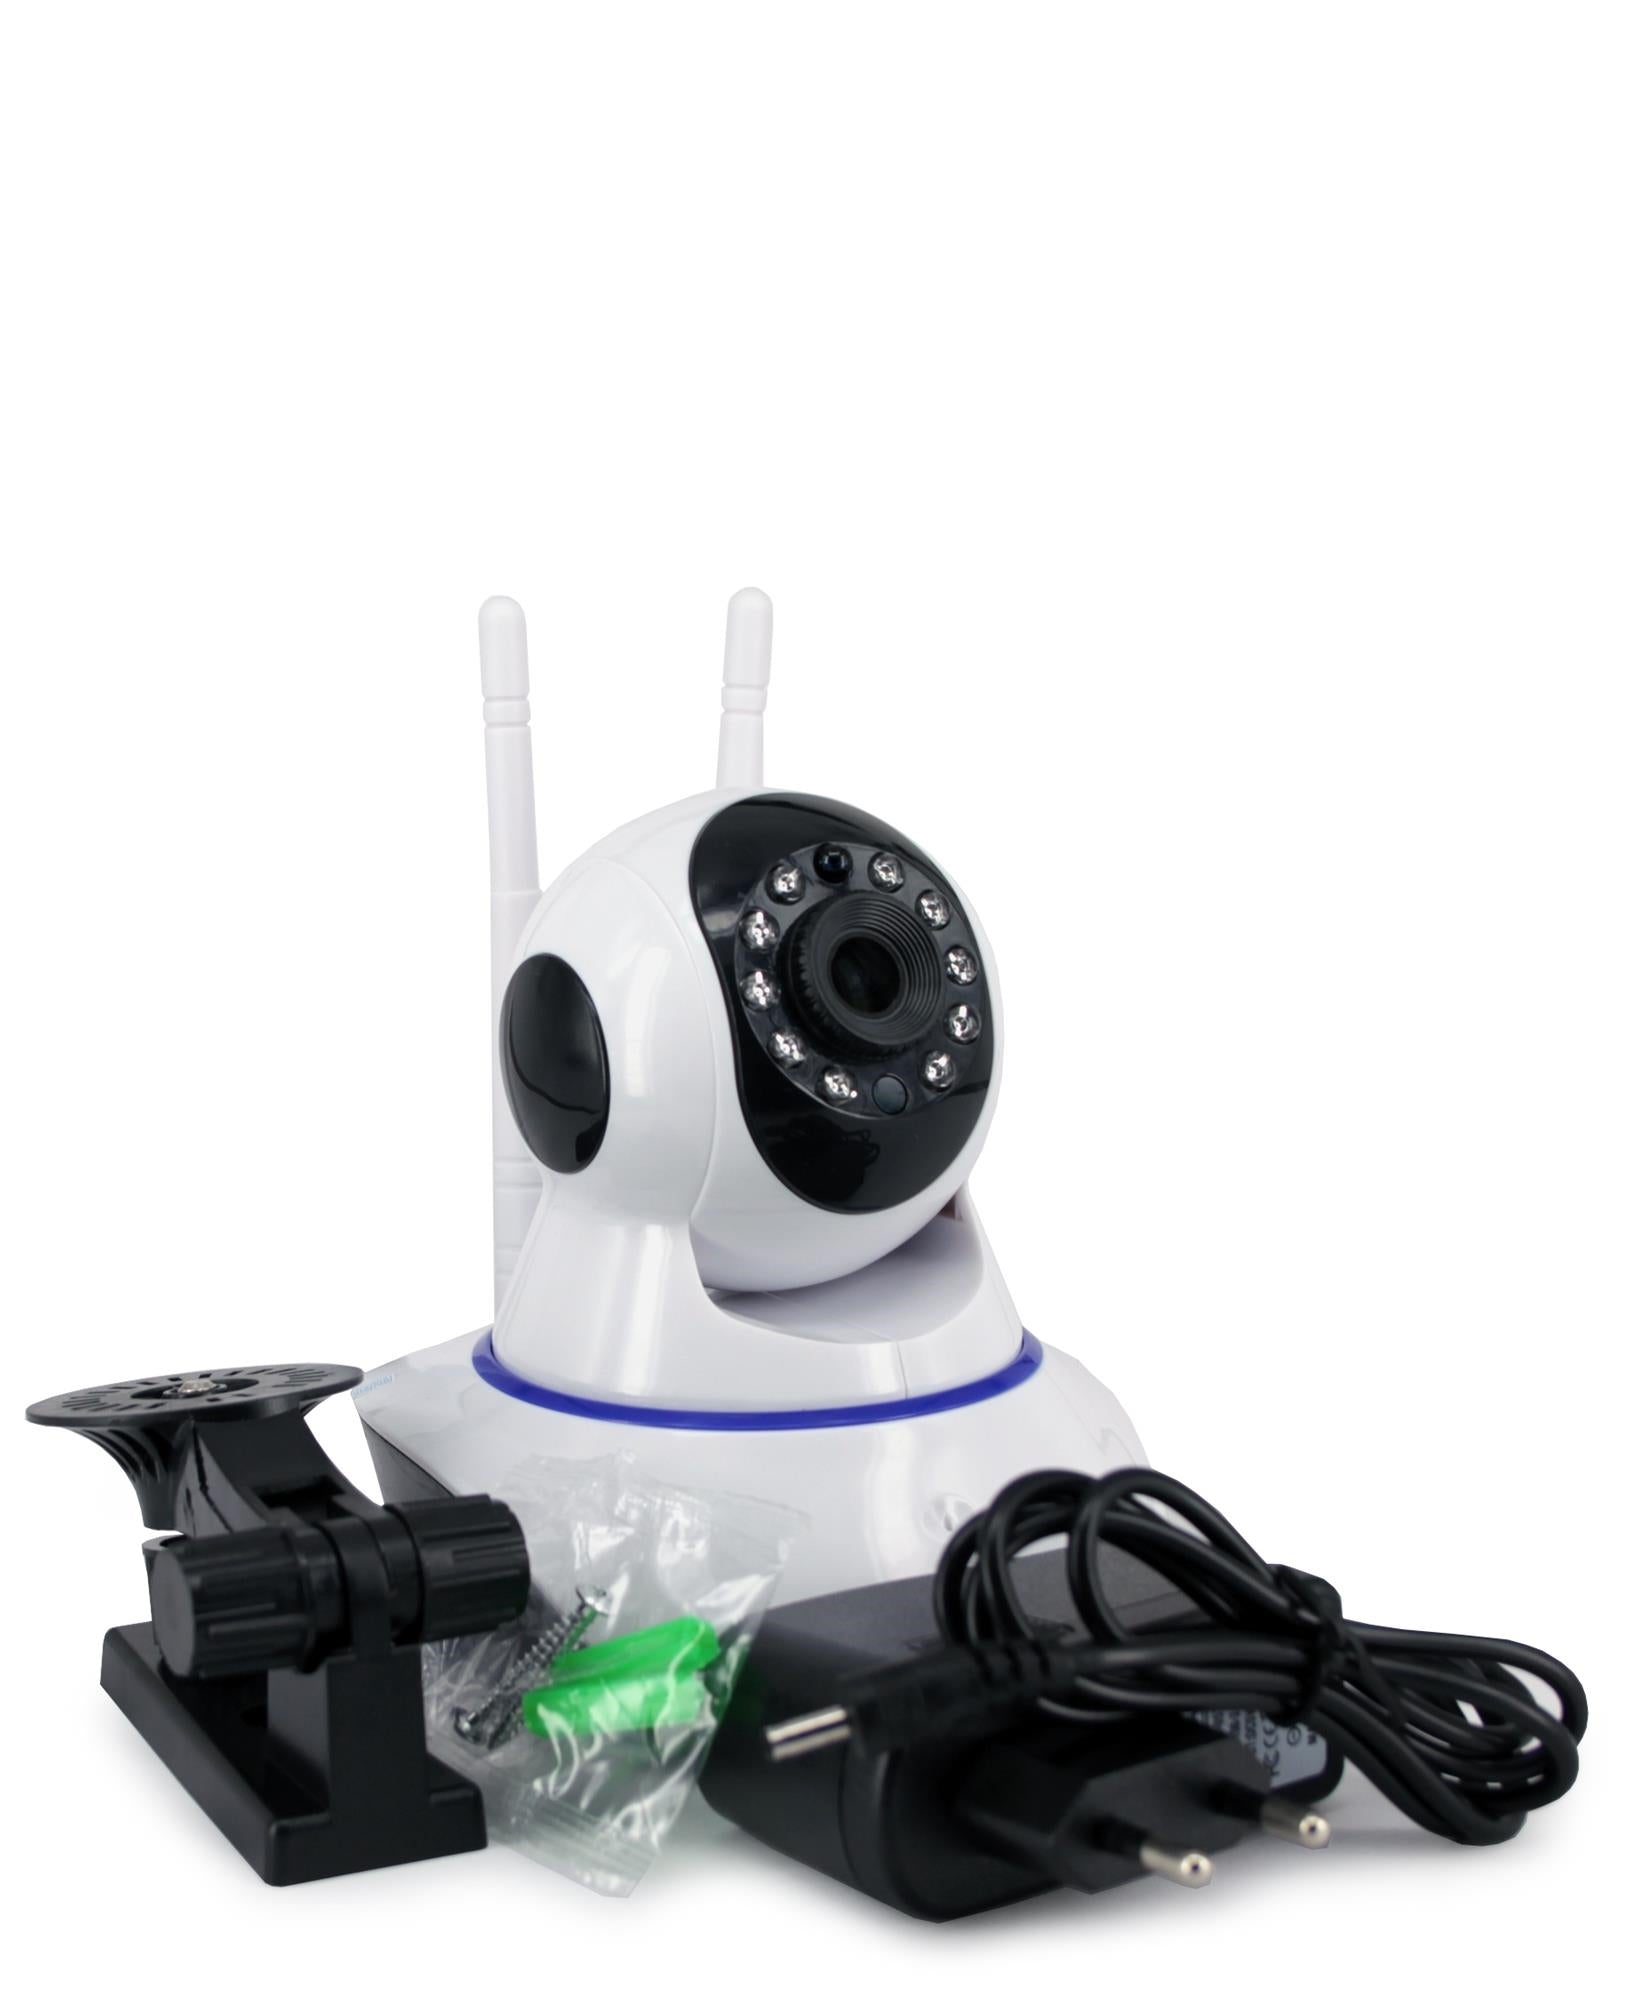 Dual Antenna 2MP Smart Wifi Camera - White